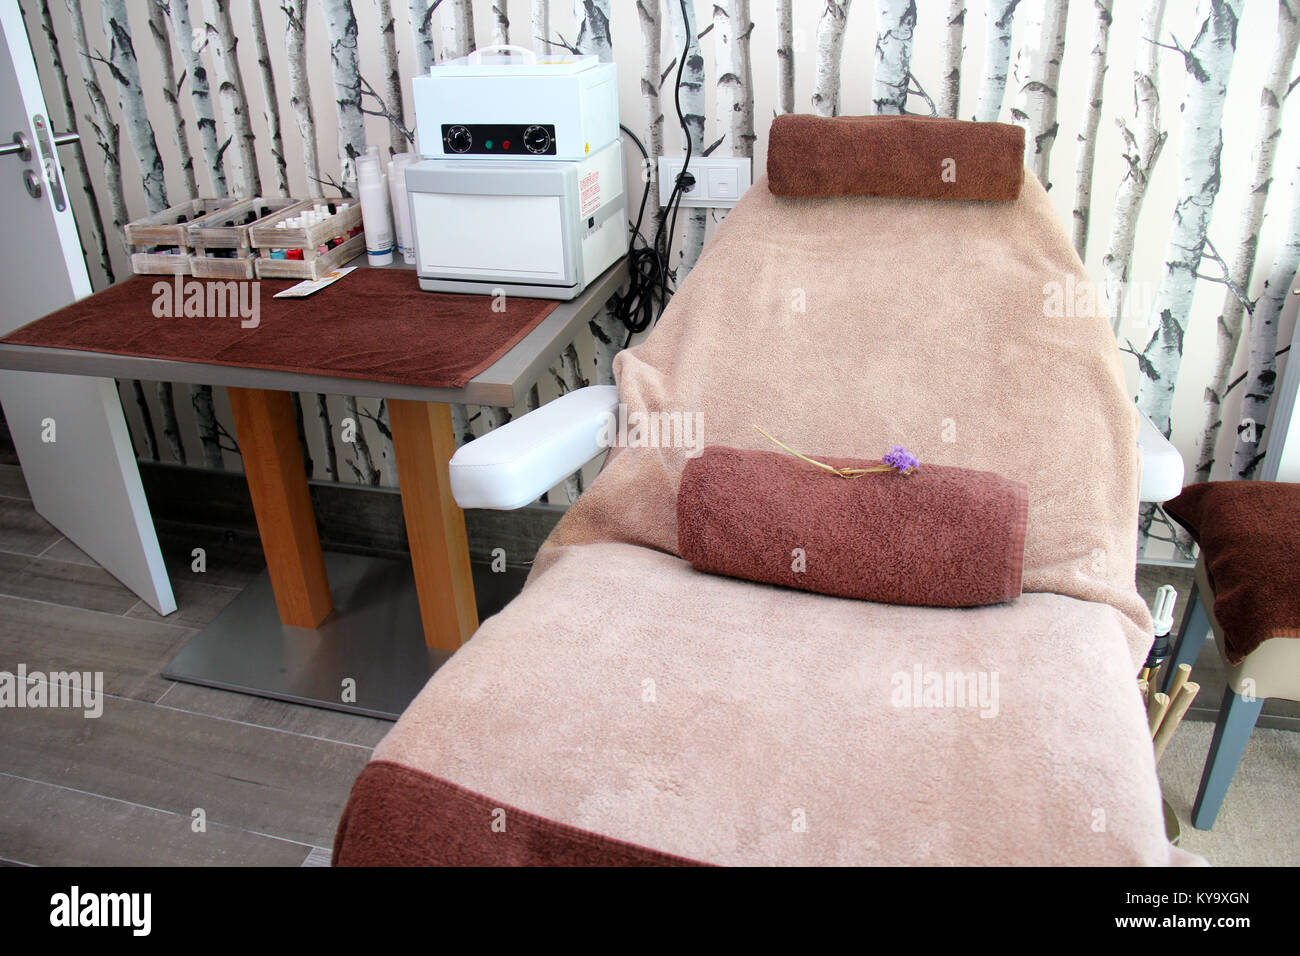 Spa type massage treatment room - Stock Image